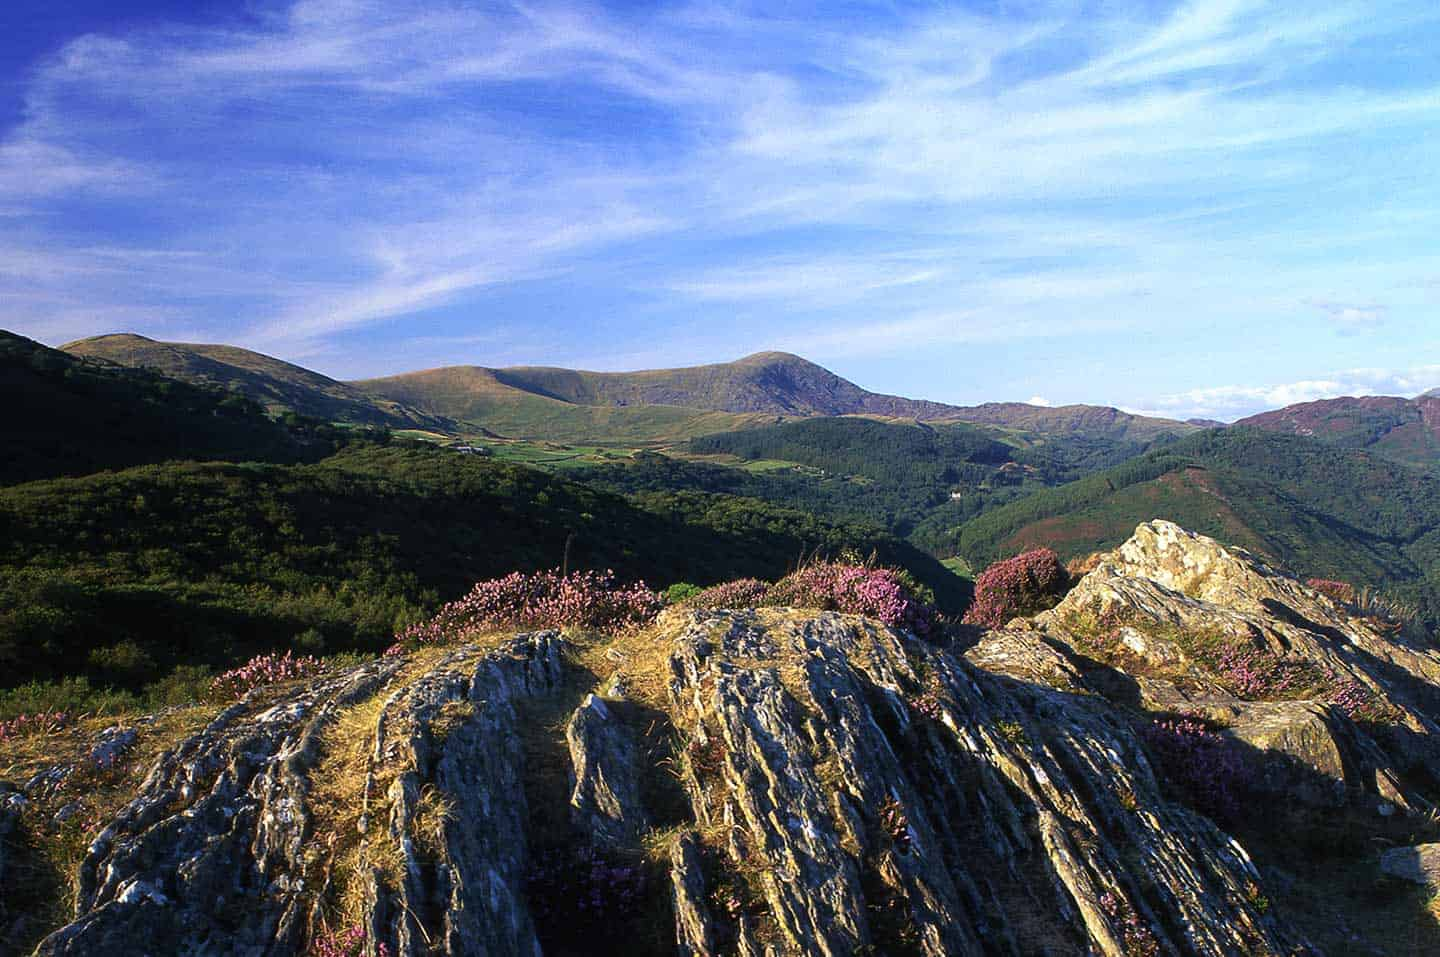 Image of the Rhinog mountains from Barmouth, Snowdonia